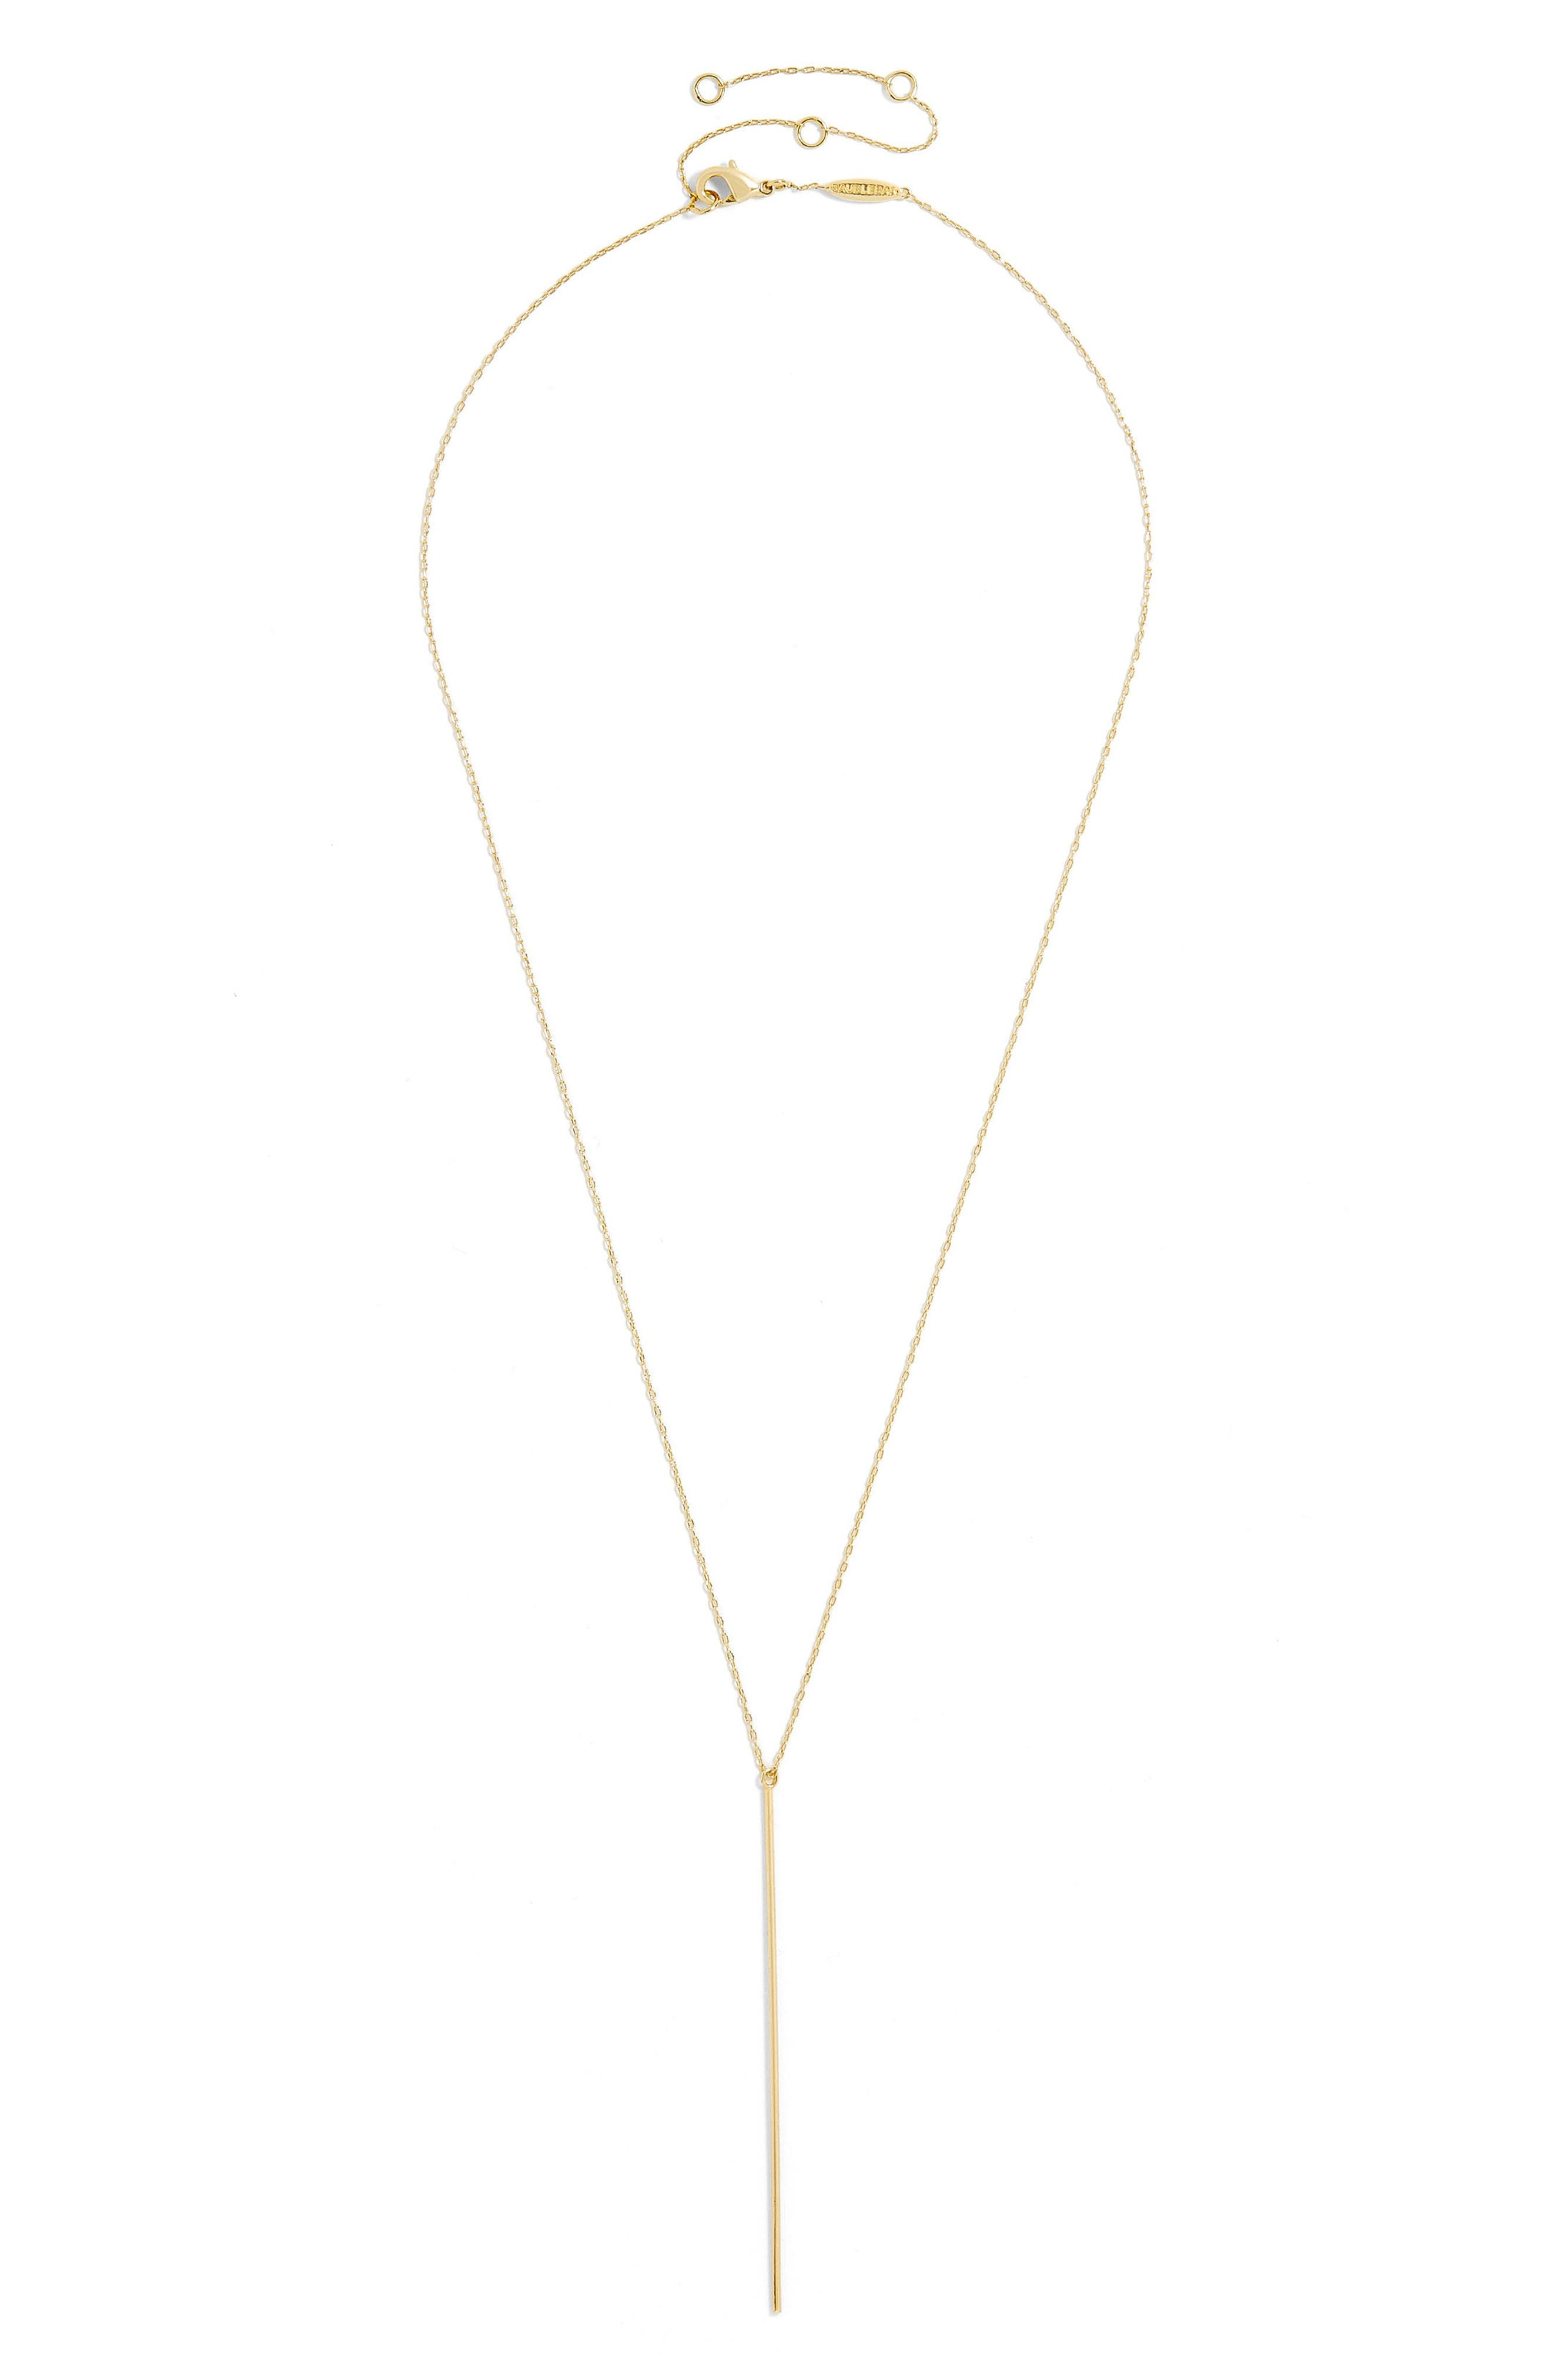 Mara Everyday Fine Layered Necklace,                         Main,                         color, Gold